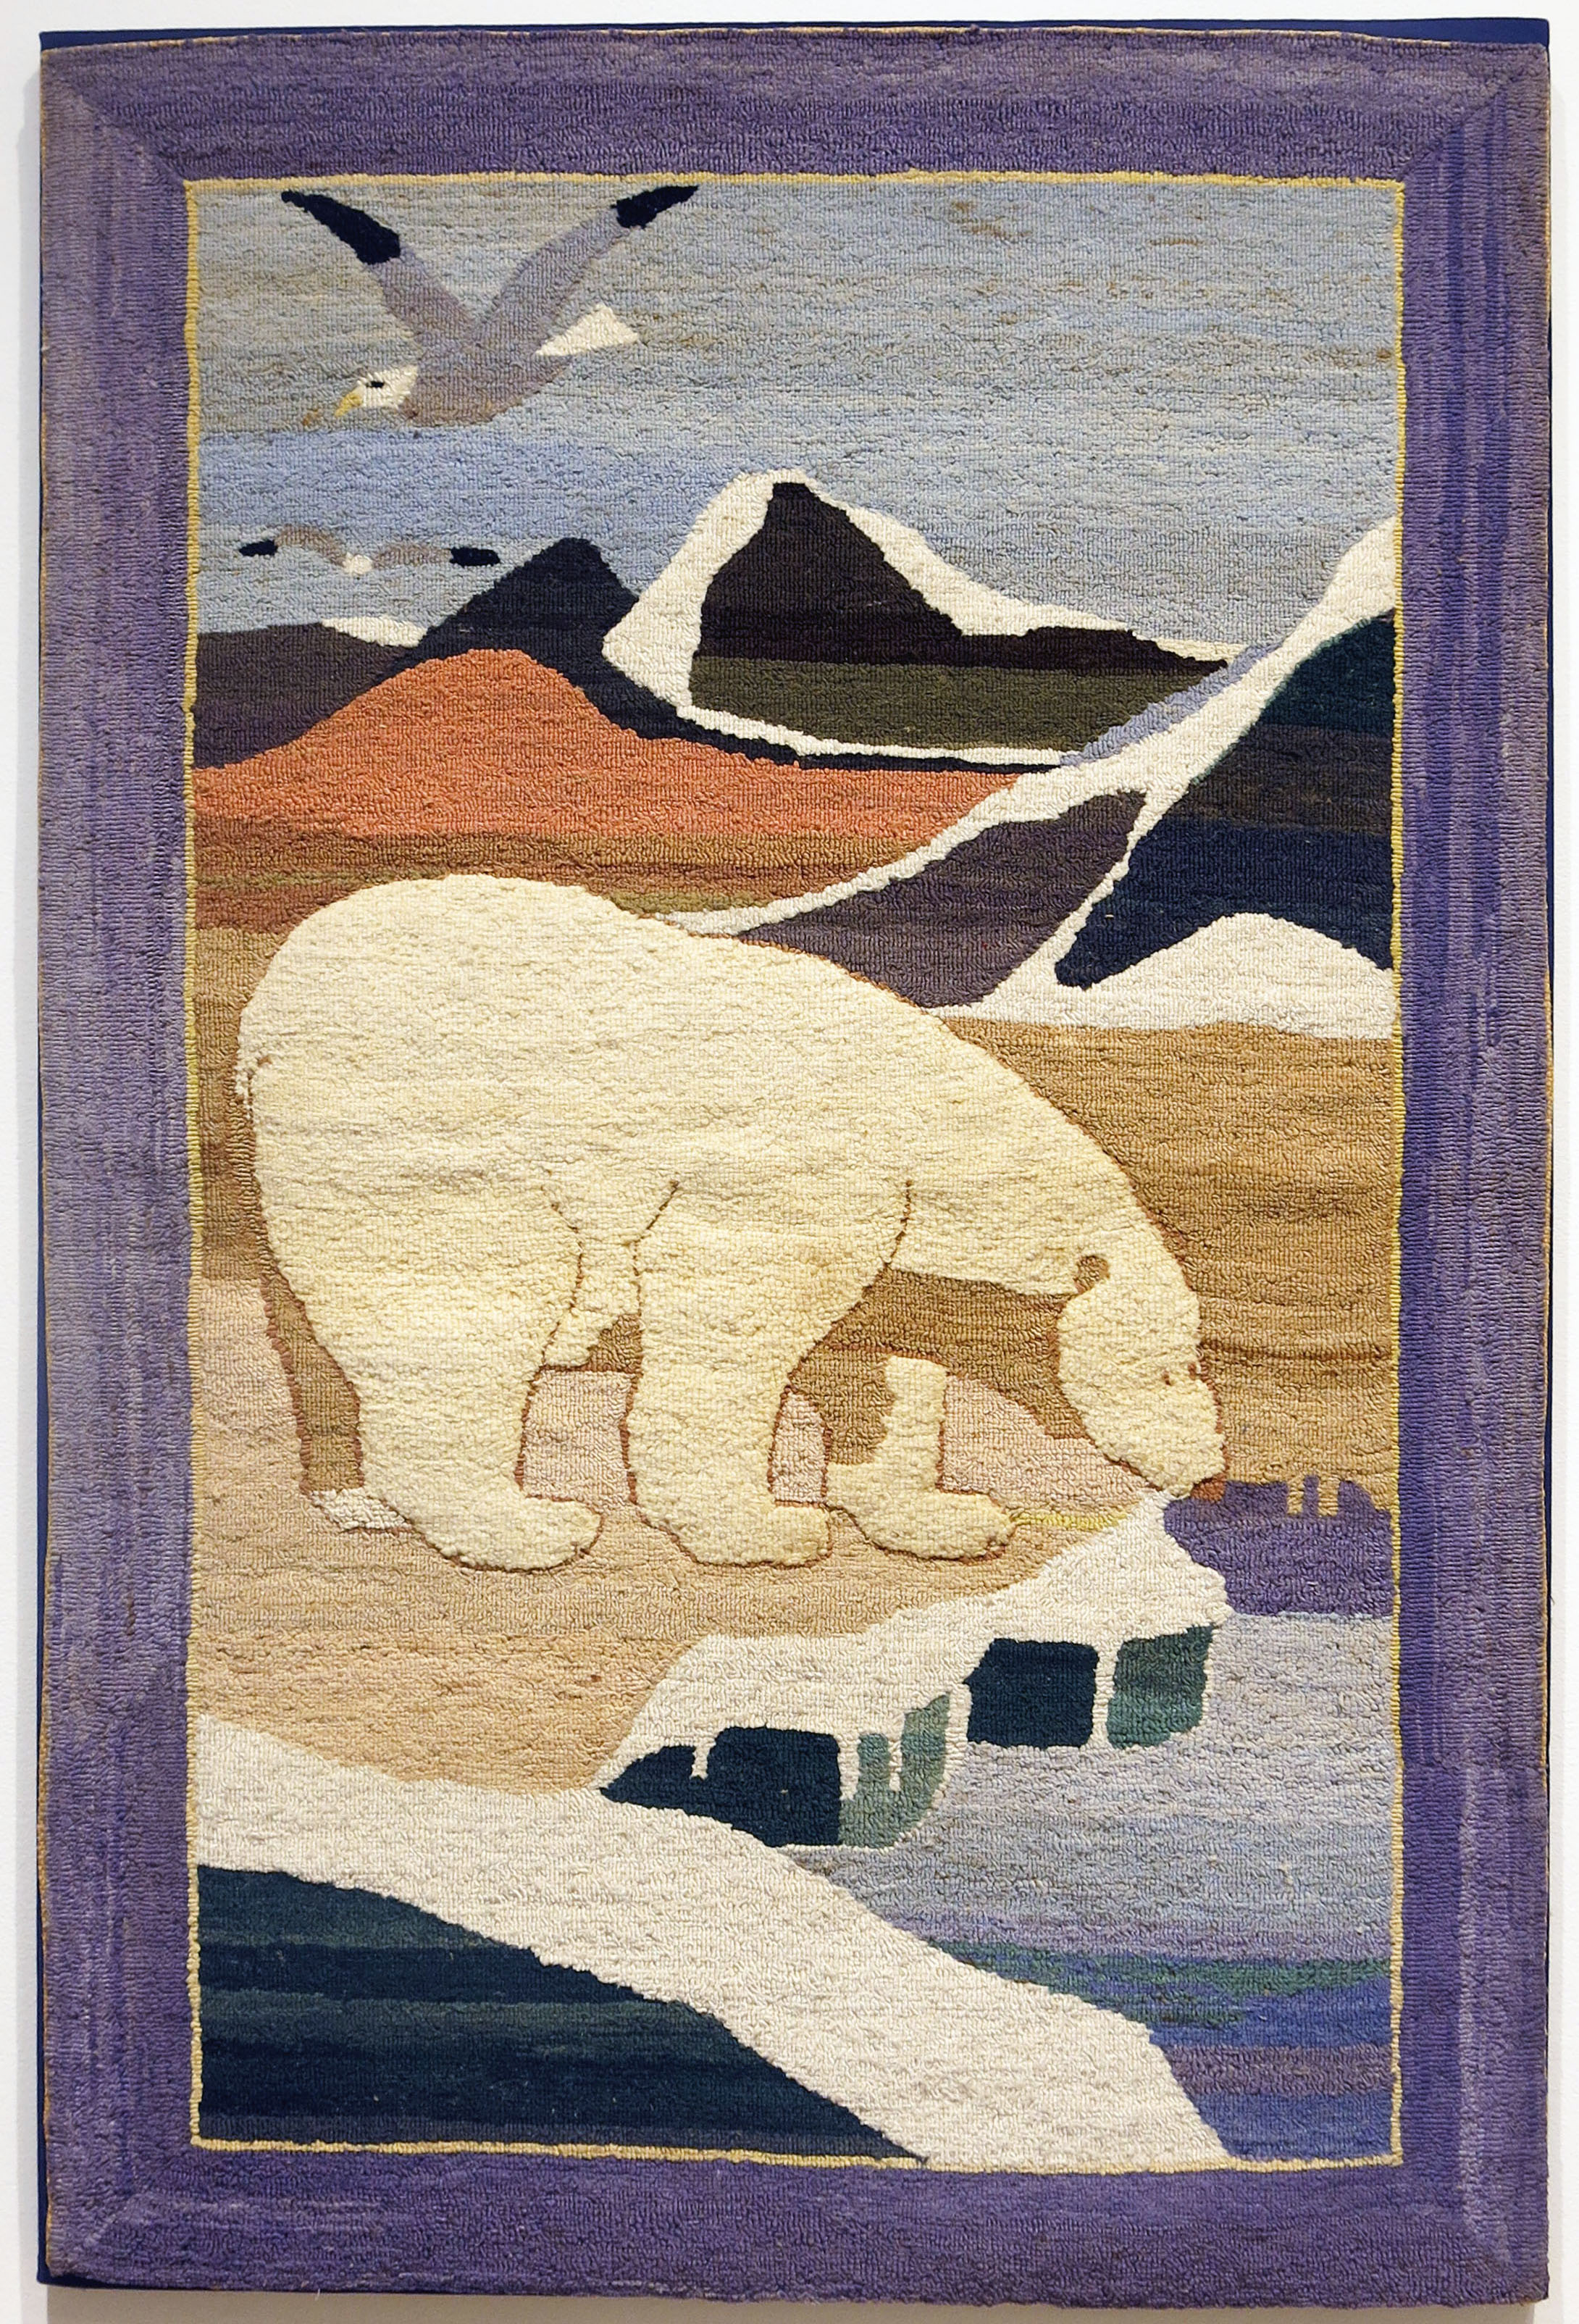 Anonymous, The Grenfell Mission,  Vertical Polar Bear on Ice,  c. 1939, silk, rayon, cotton, and velvet; dyed, 41h x 26.5w in.